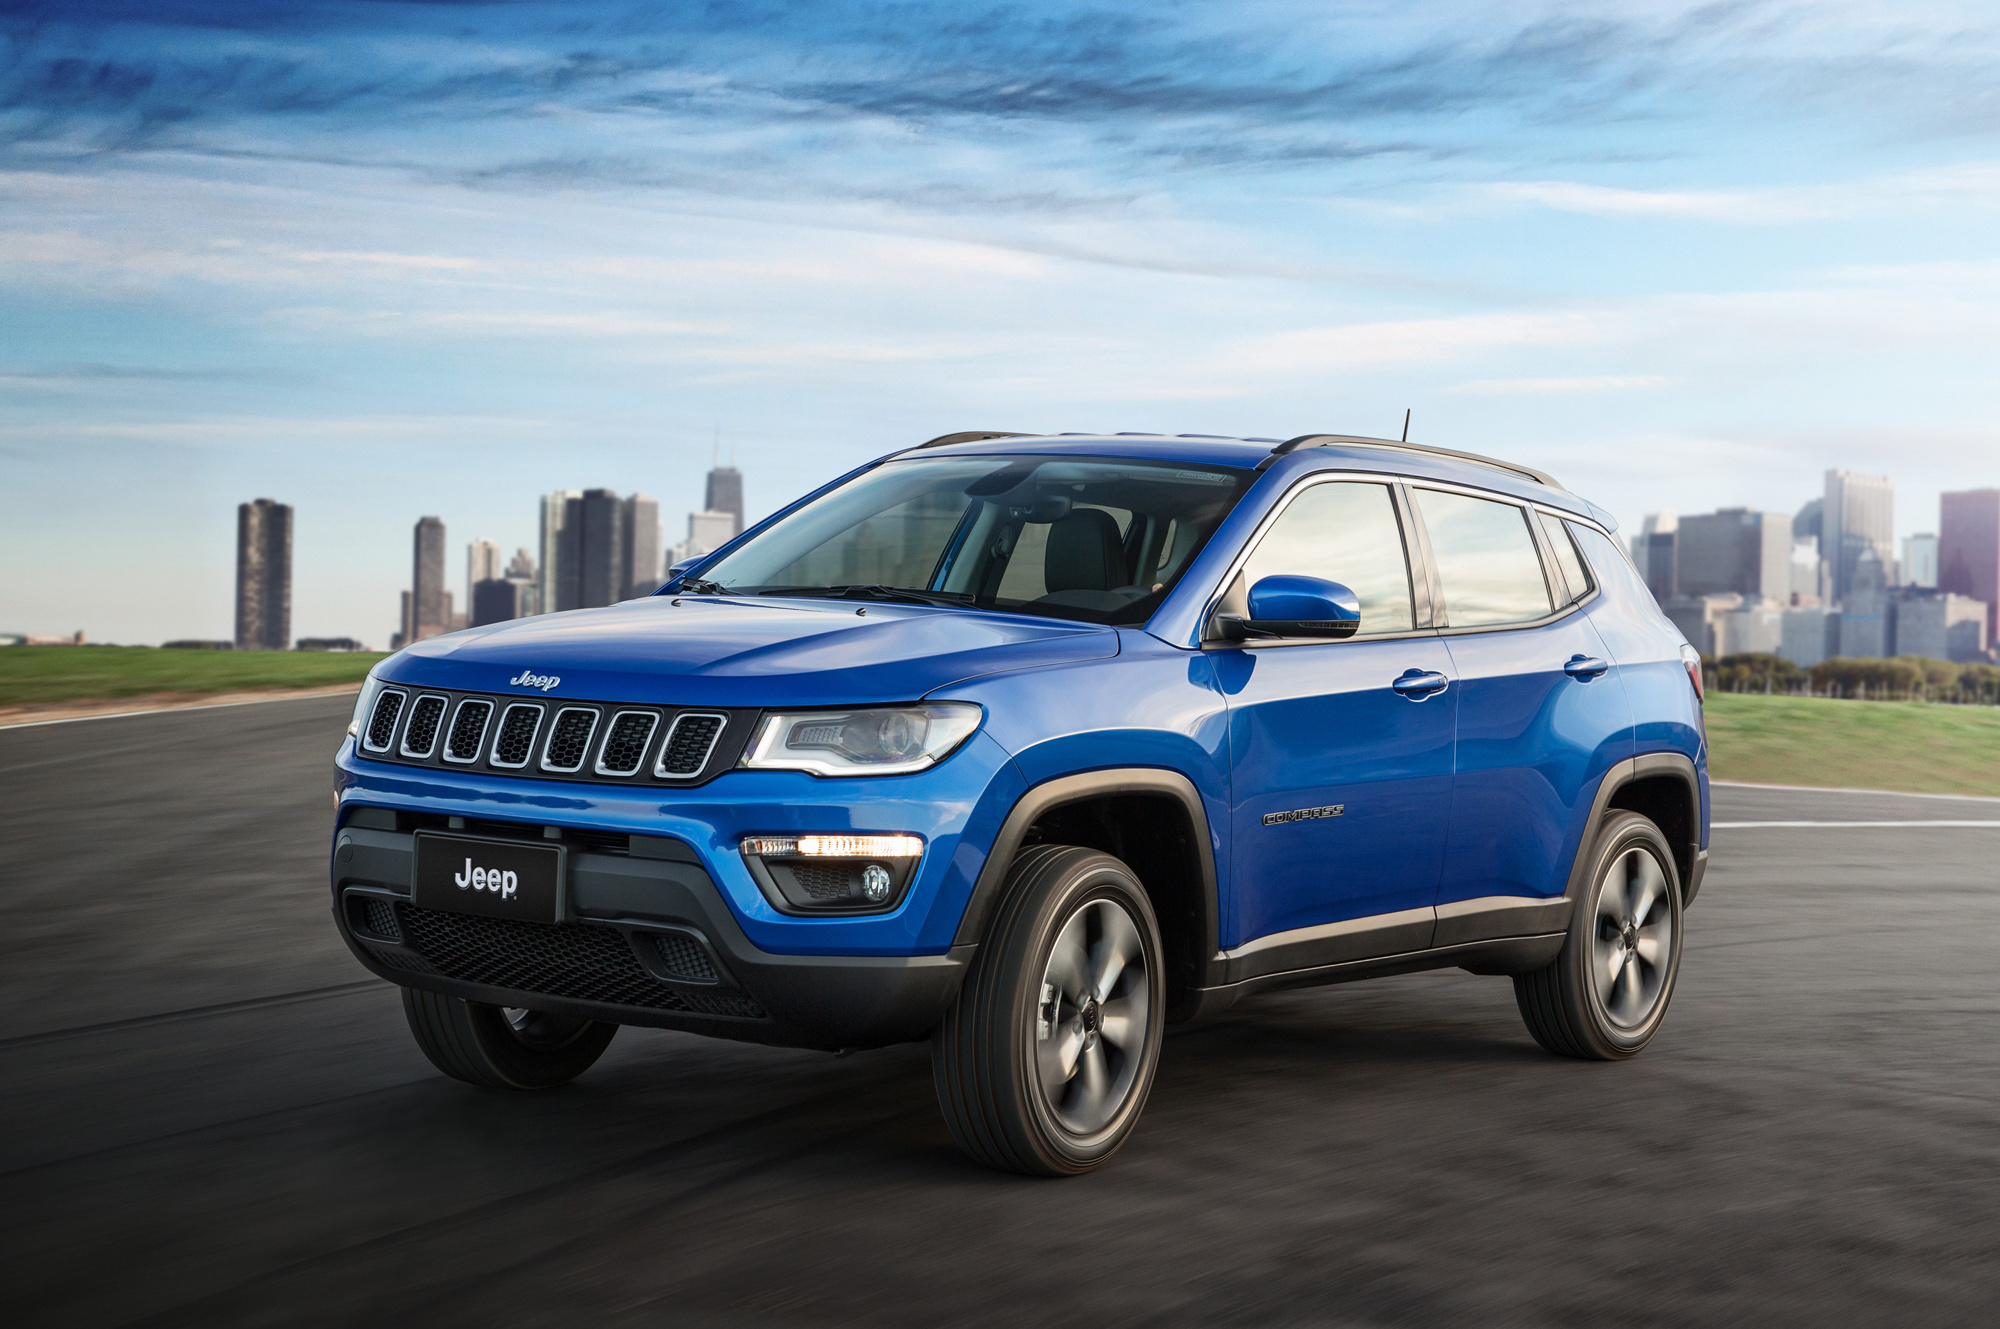 Jeep Compass Wallpapers Images Photos Pictures Backgrounds